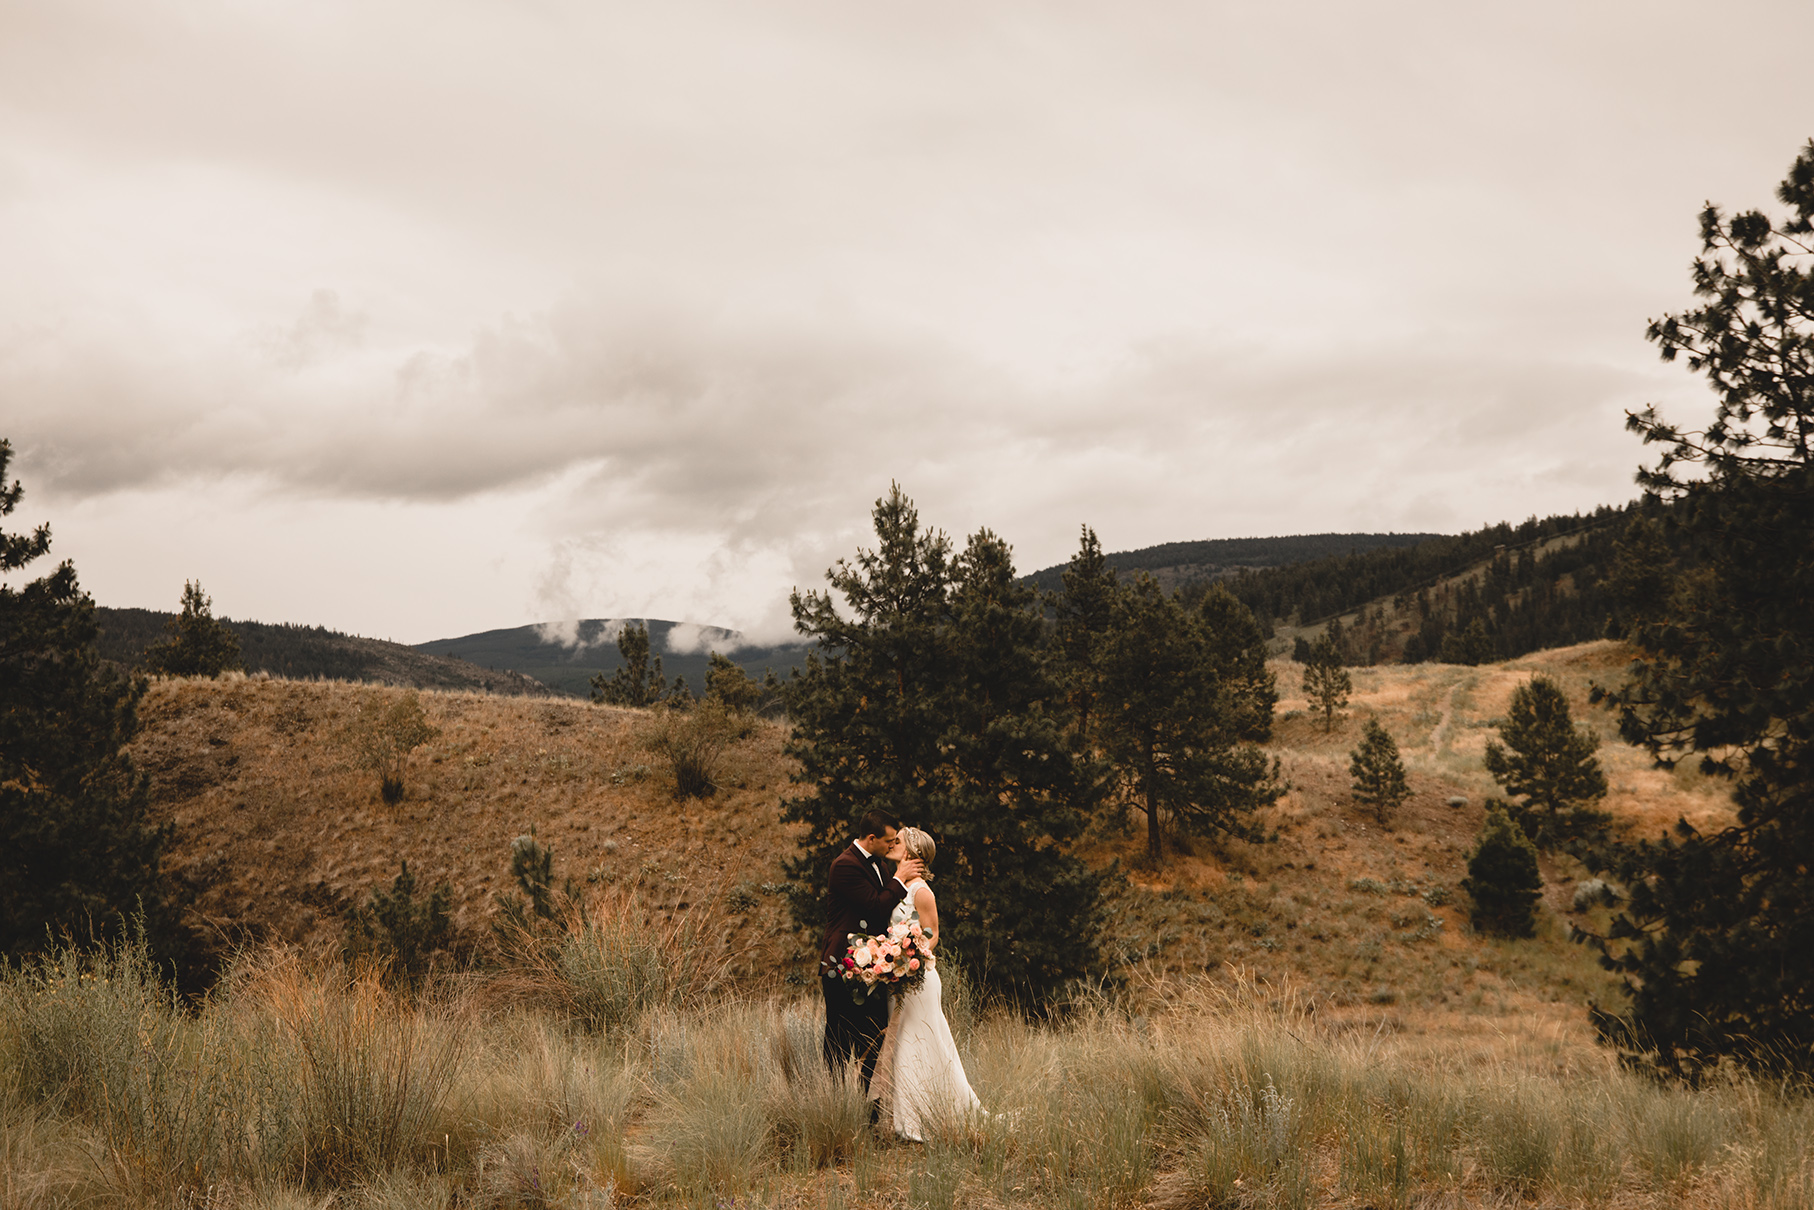 Alex + Charisse - Poplar Grove Winery, Okanagan BC Wedding Photography